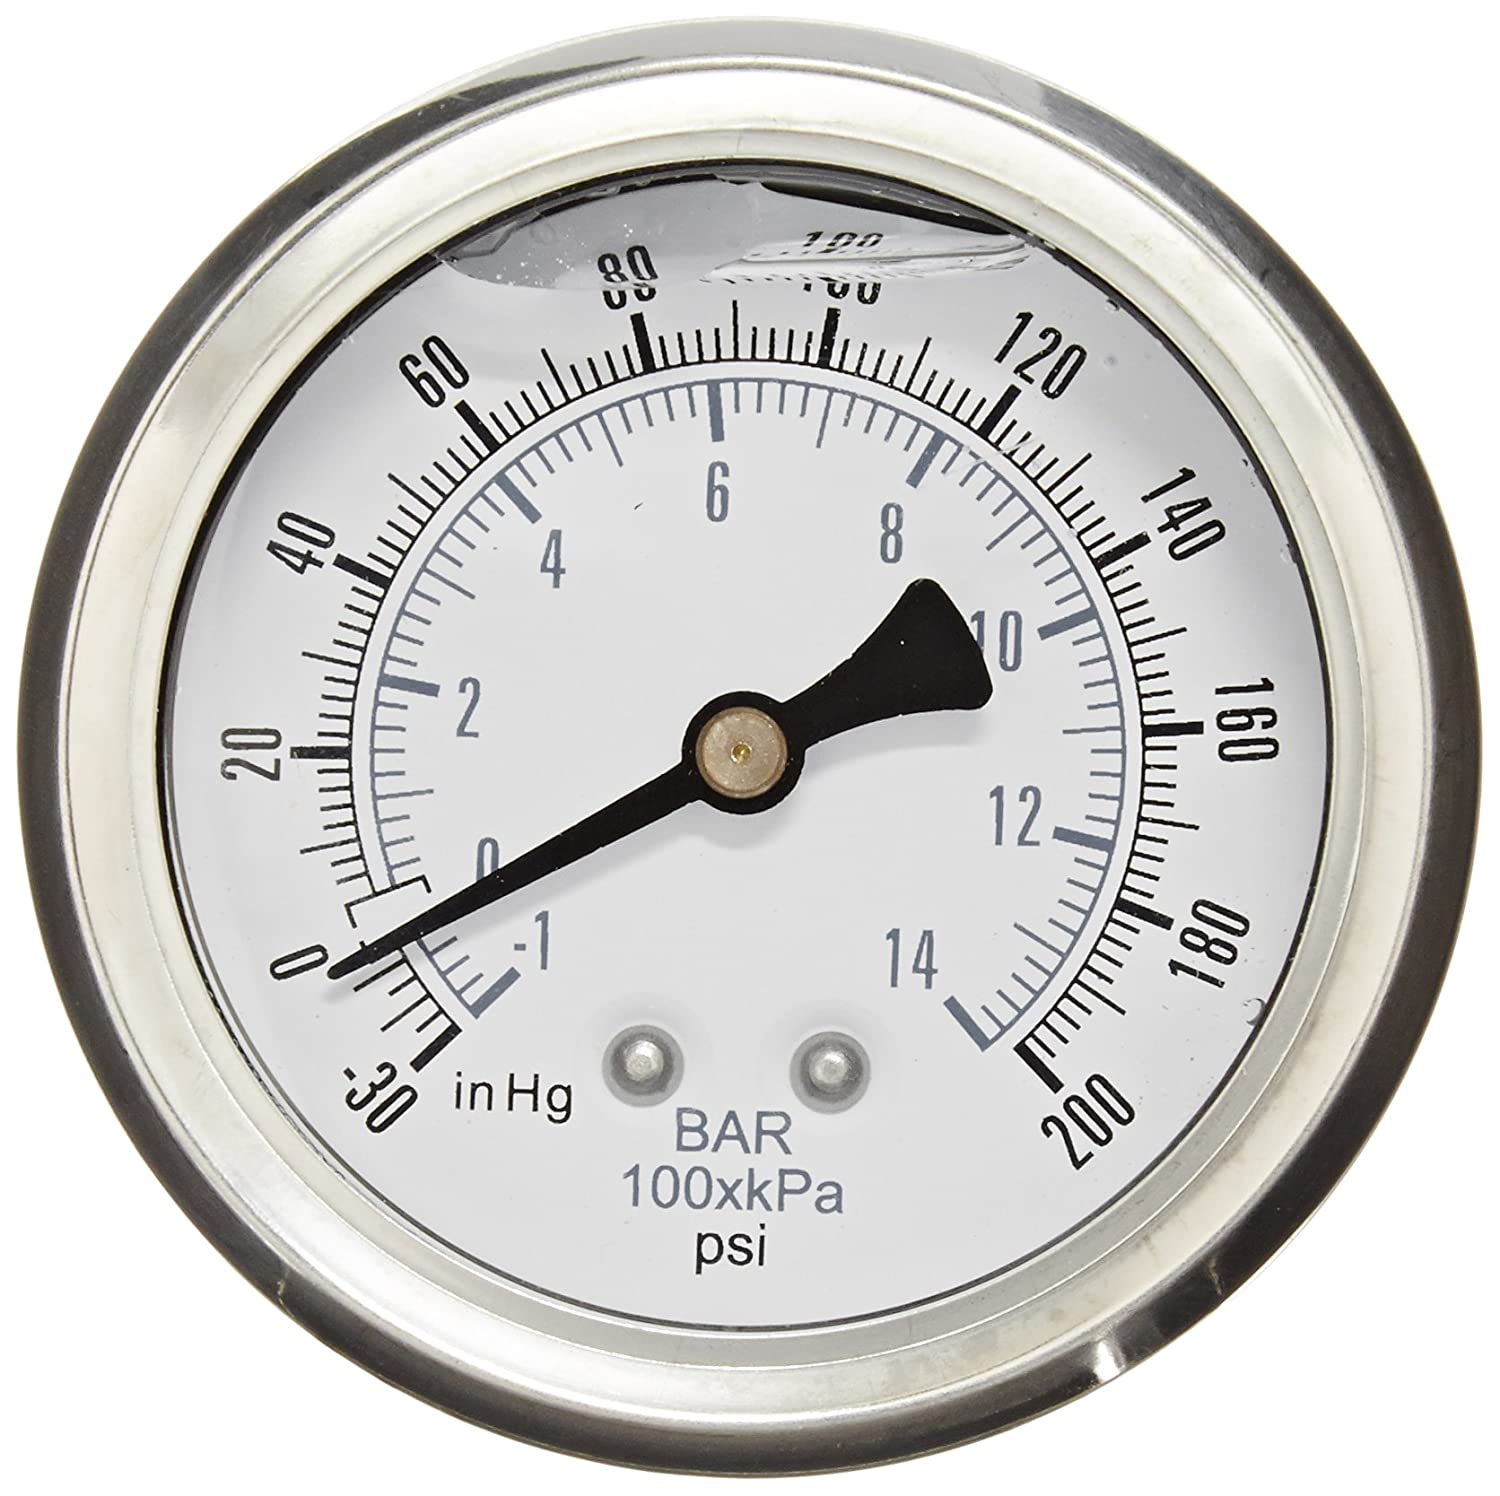 PIC Gauge PRO 202L 254CG Glycerin Filled Industrial Center Back Mount Pressure Gauge with Stainless Steel Case Brass Internals Plastic Lens 2 1 2 Dial Size 1 4 Male NPT 30 0 200 psi